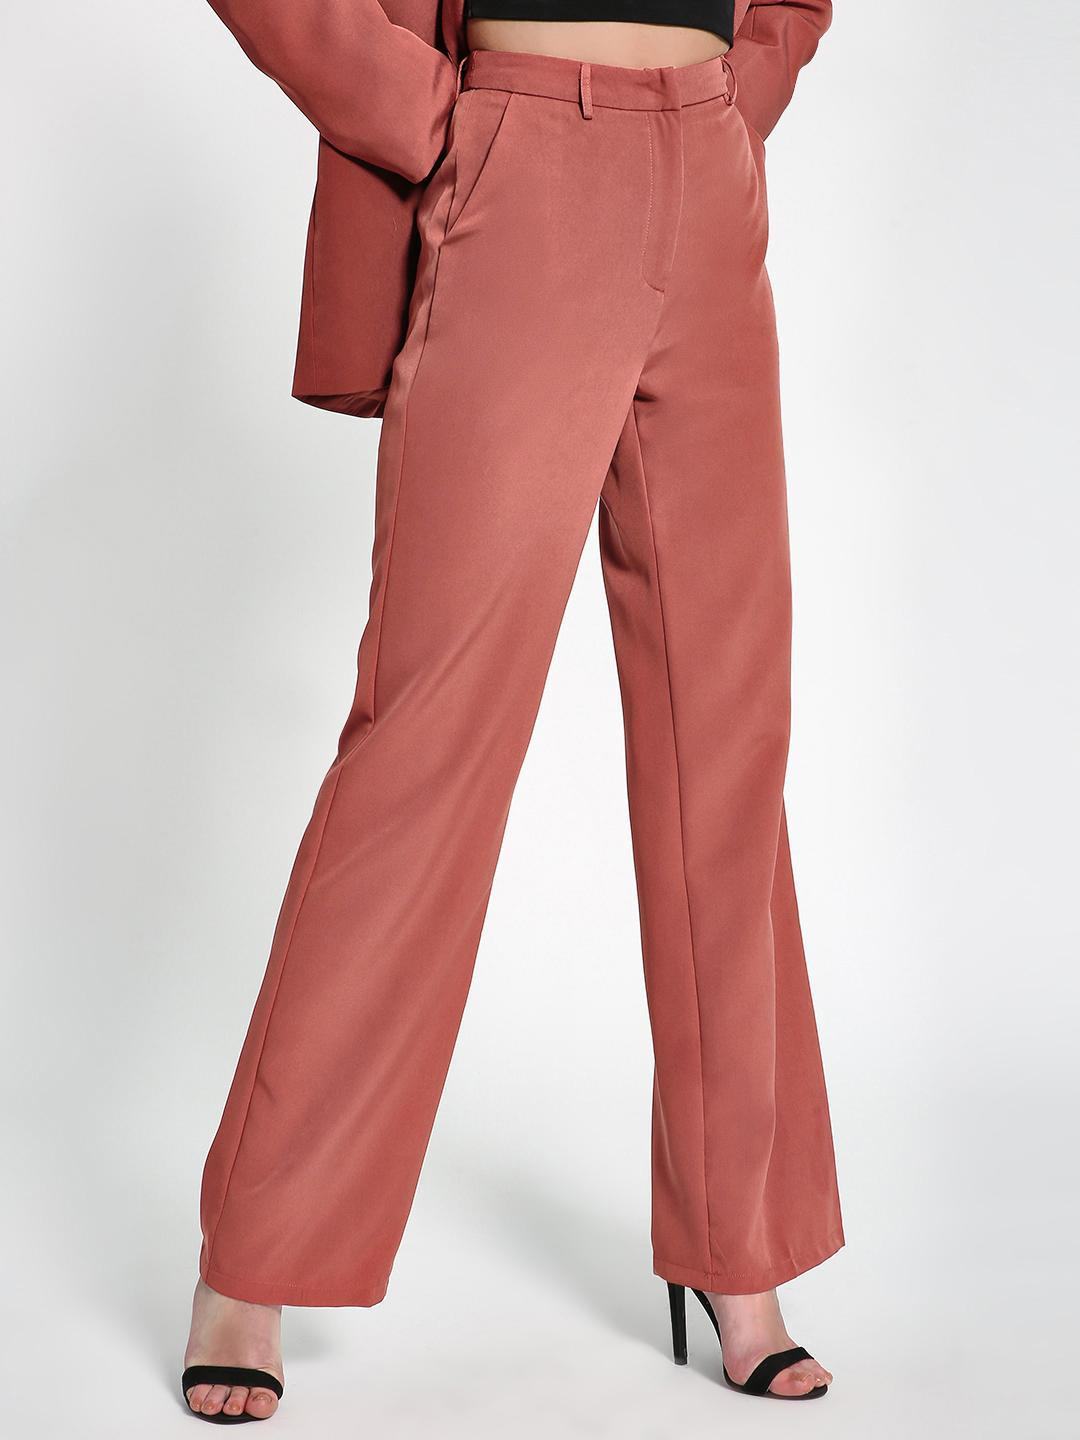 Missguided Brown High-Waist Formal Trousers 1